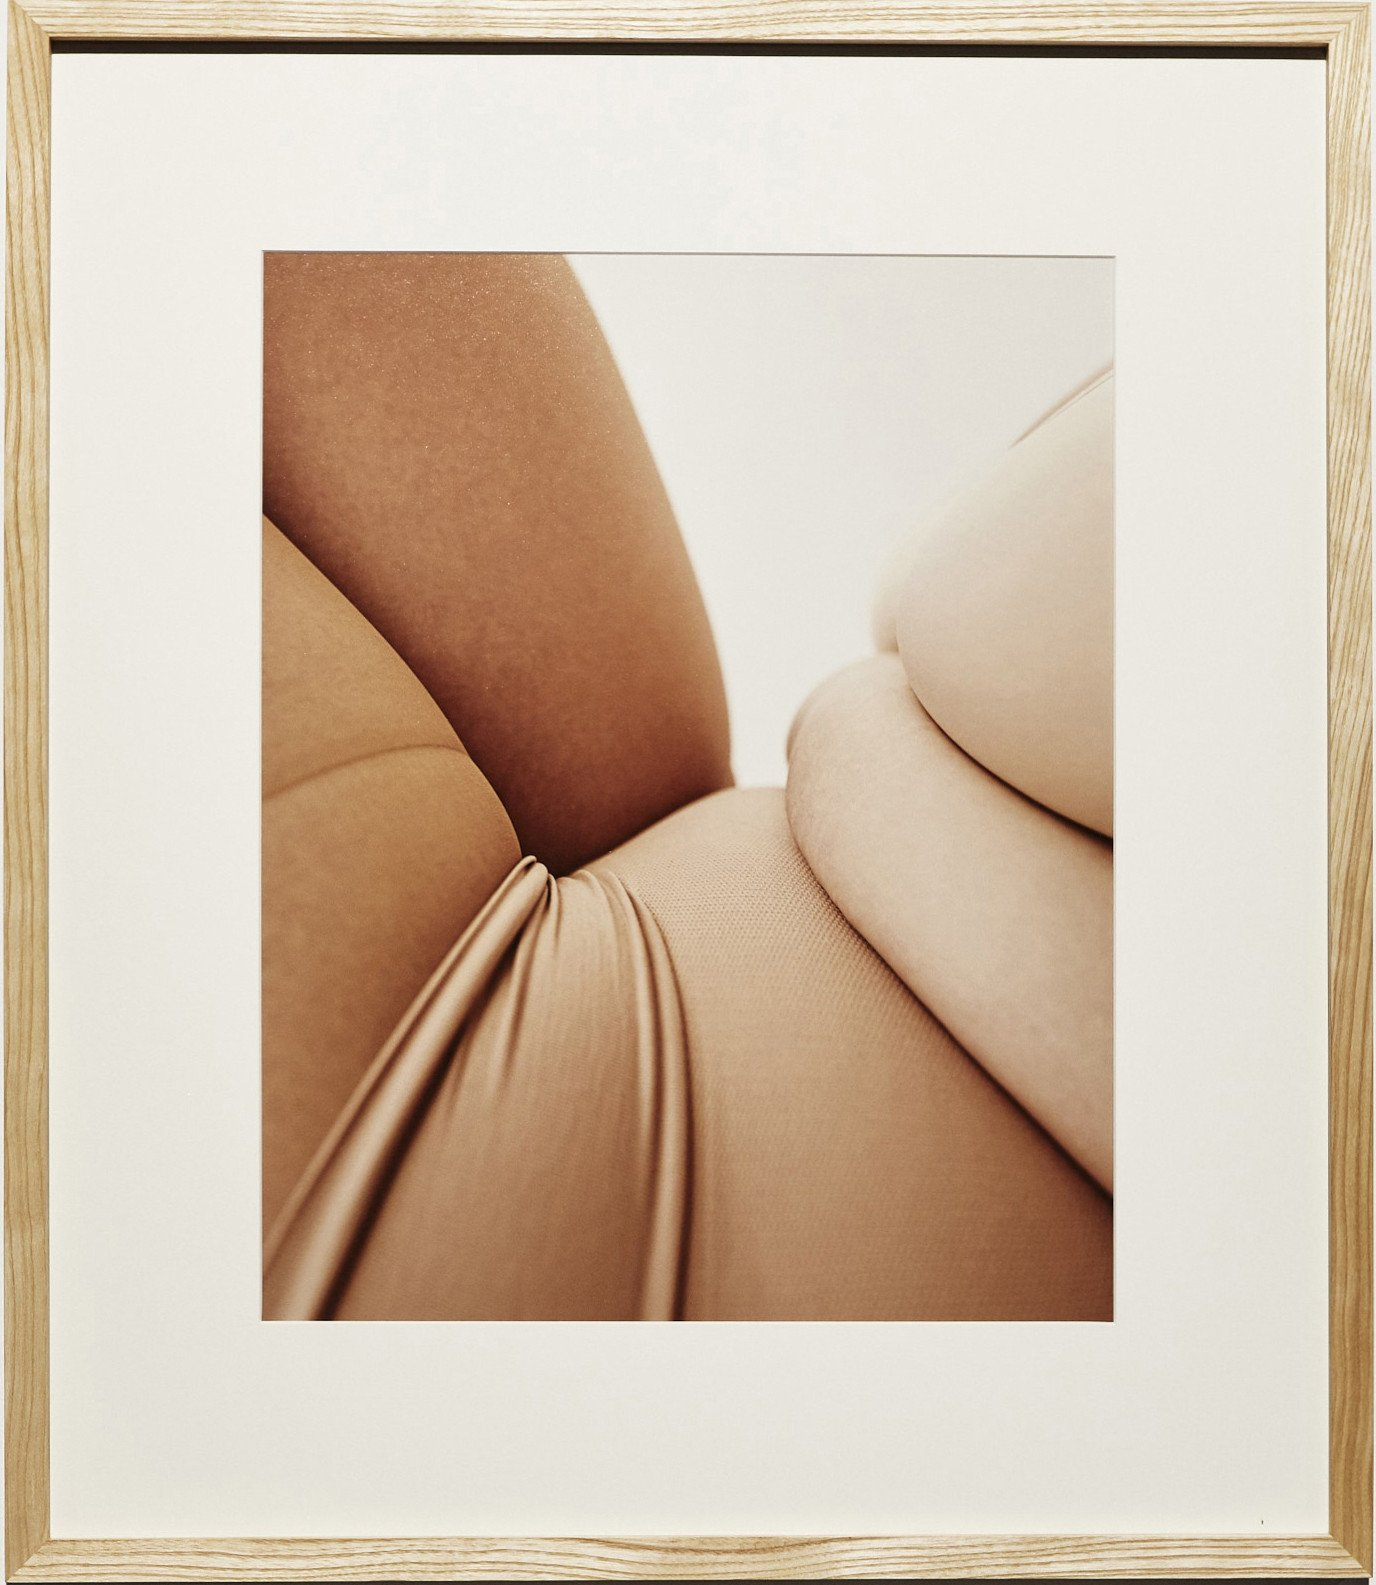 Framed Photo Waves of Love by A. Dąbrowska for Gallery VDA - 469850 - photo